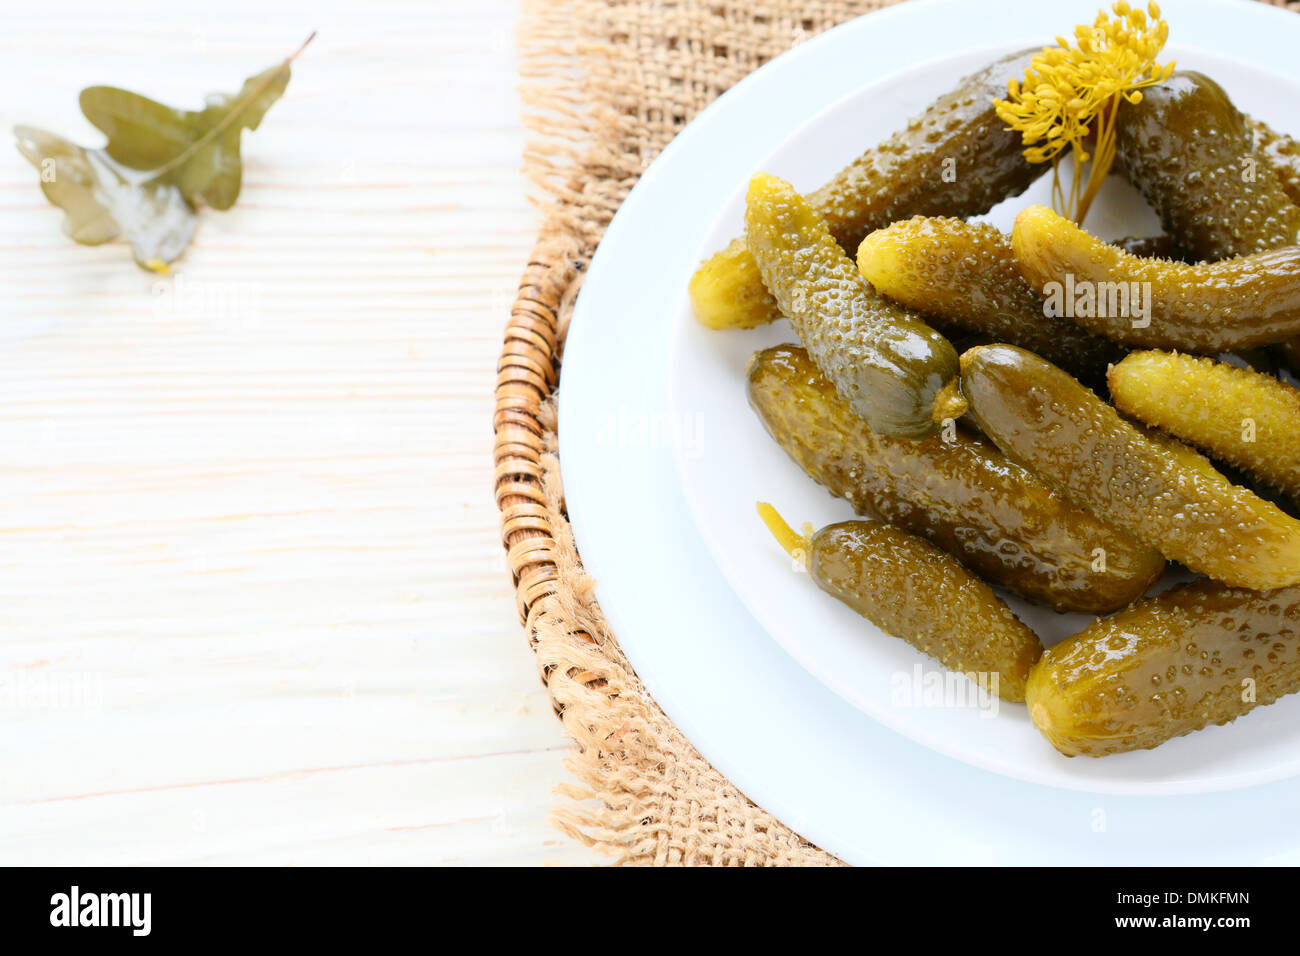 small pickled cucumbers, food - Stock Image